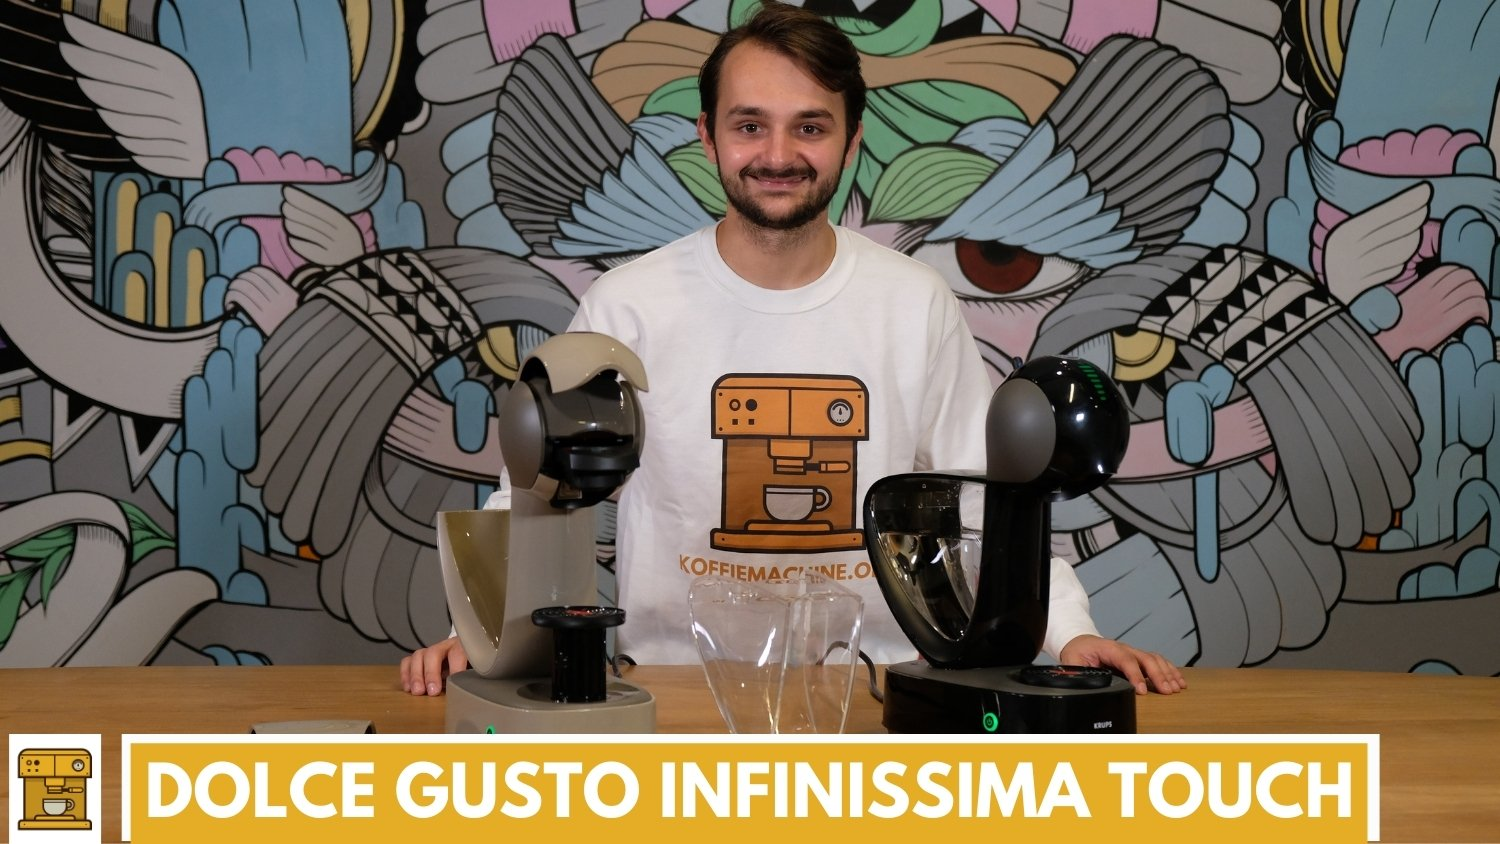 Dolce Gusto Infinissima Touch review 2021